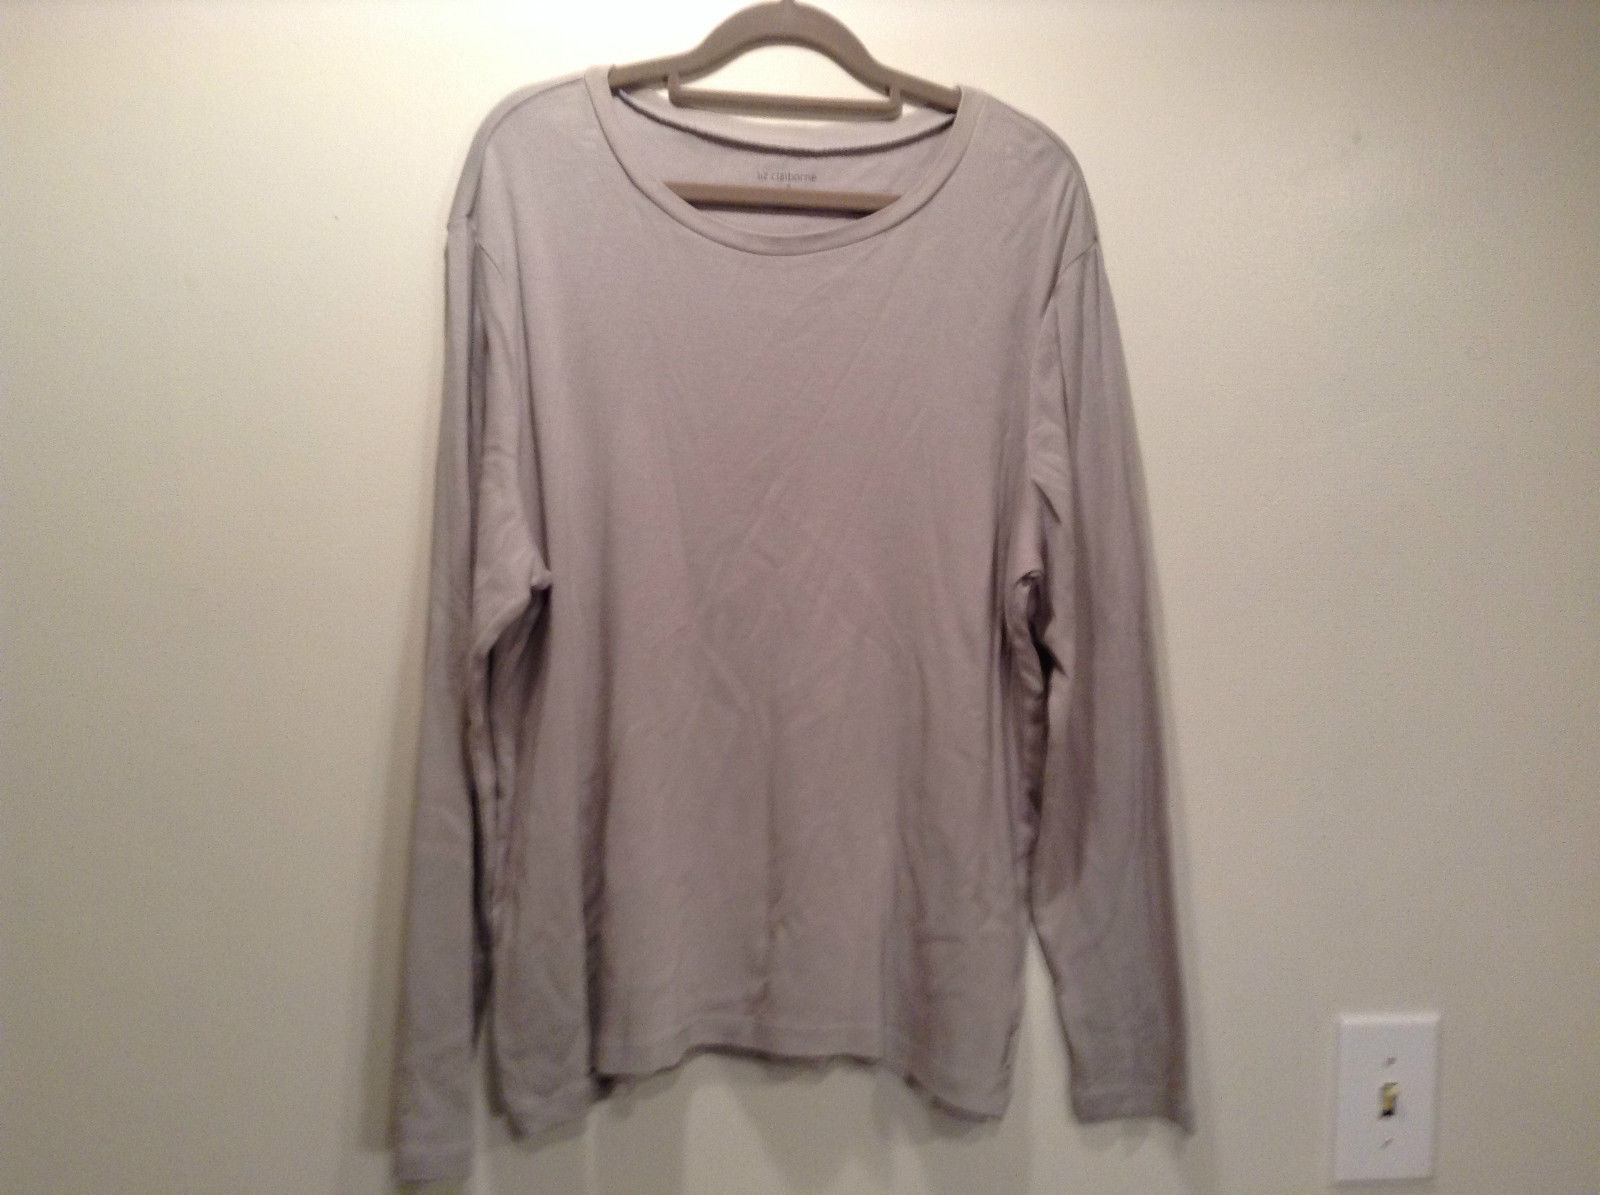 Size 1X Liz Claiborne Long Sleeve Gray 100% Cotton Scoop Neck Top Stretchy